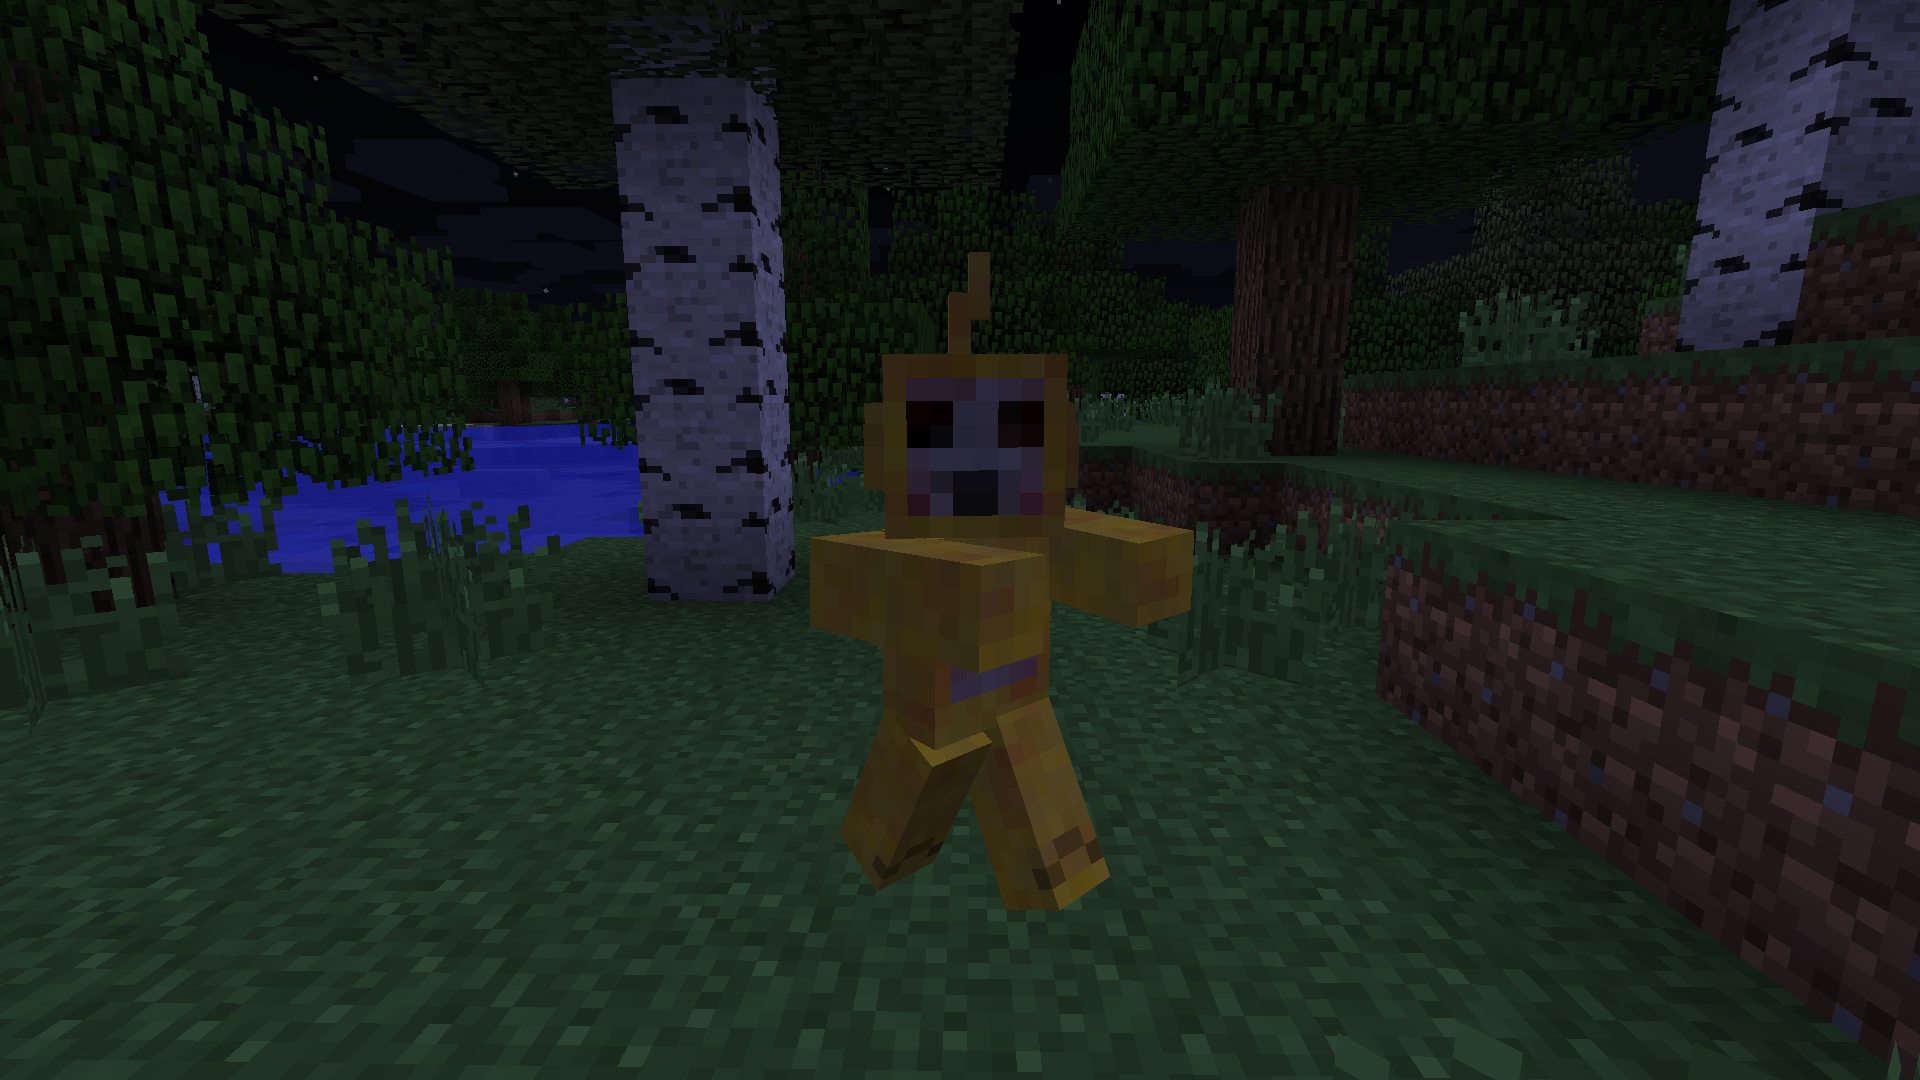 Images Teletubbies Mod Mods Projects Minecraft